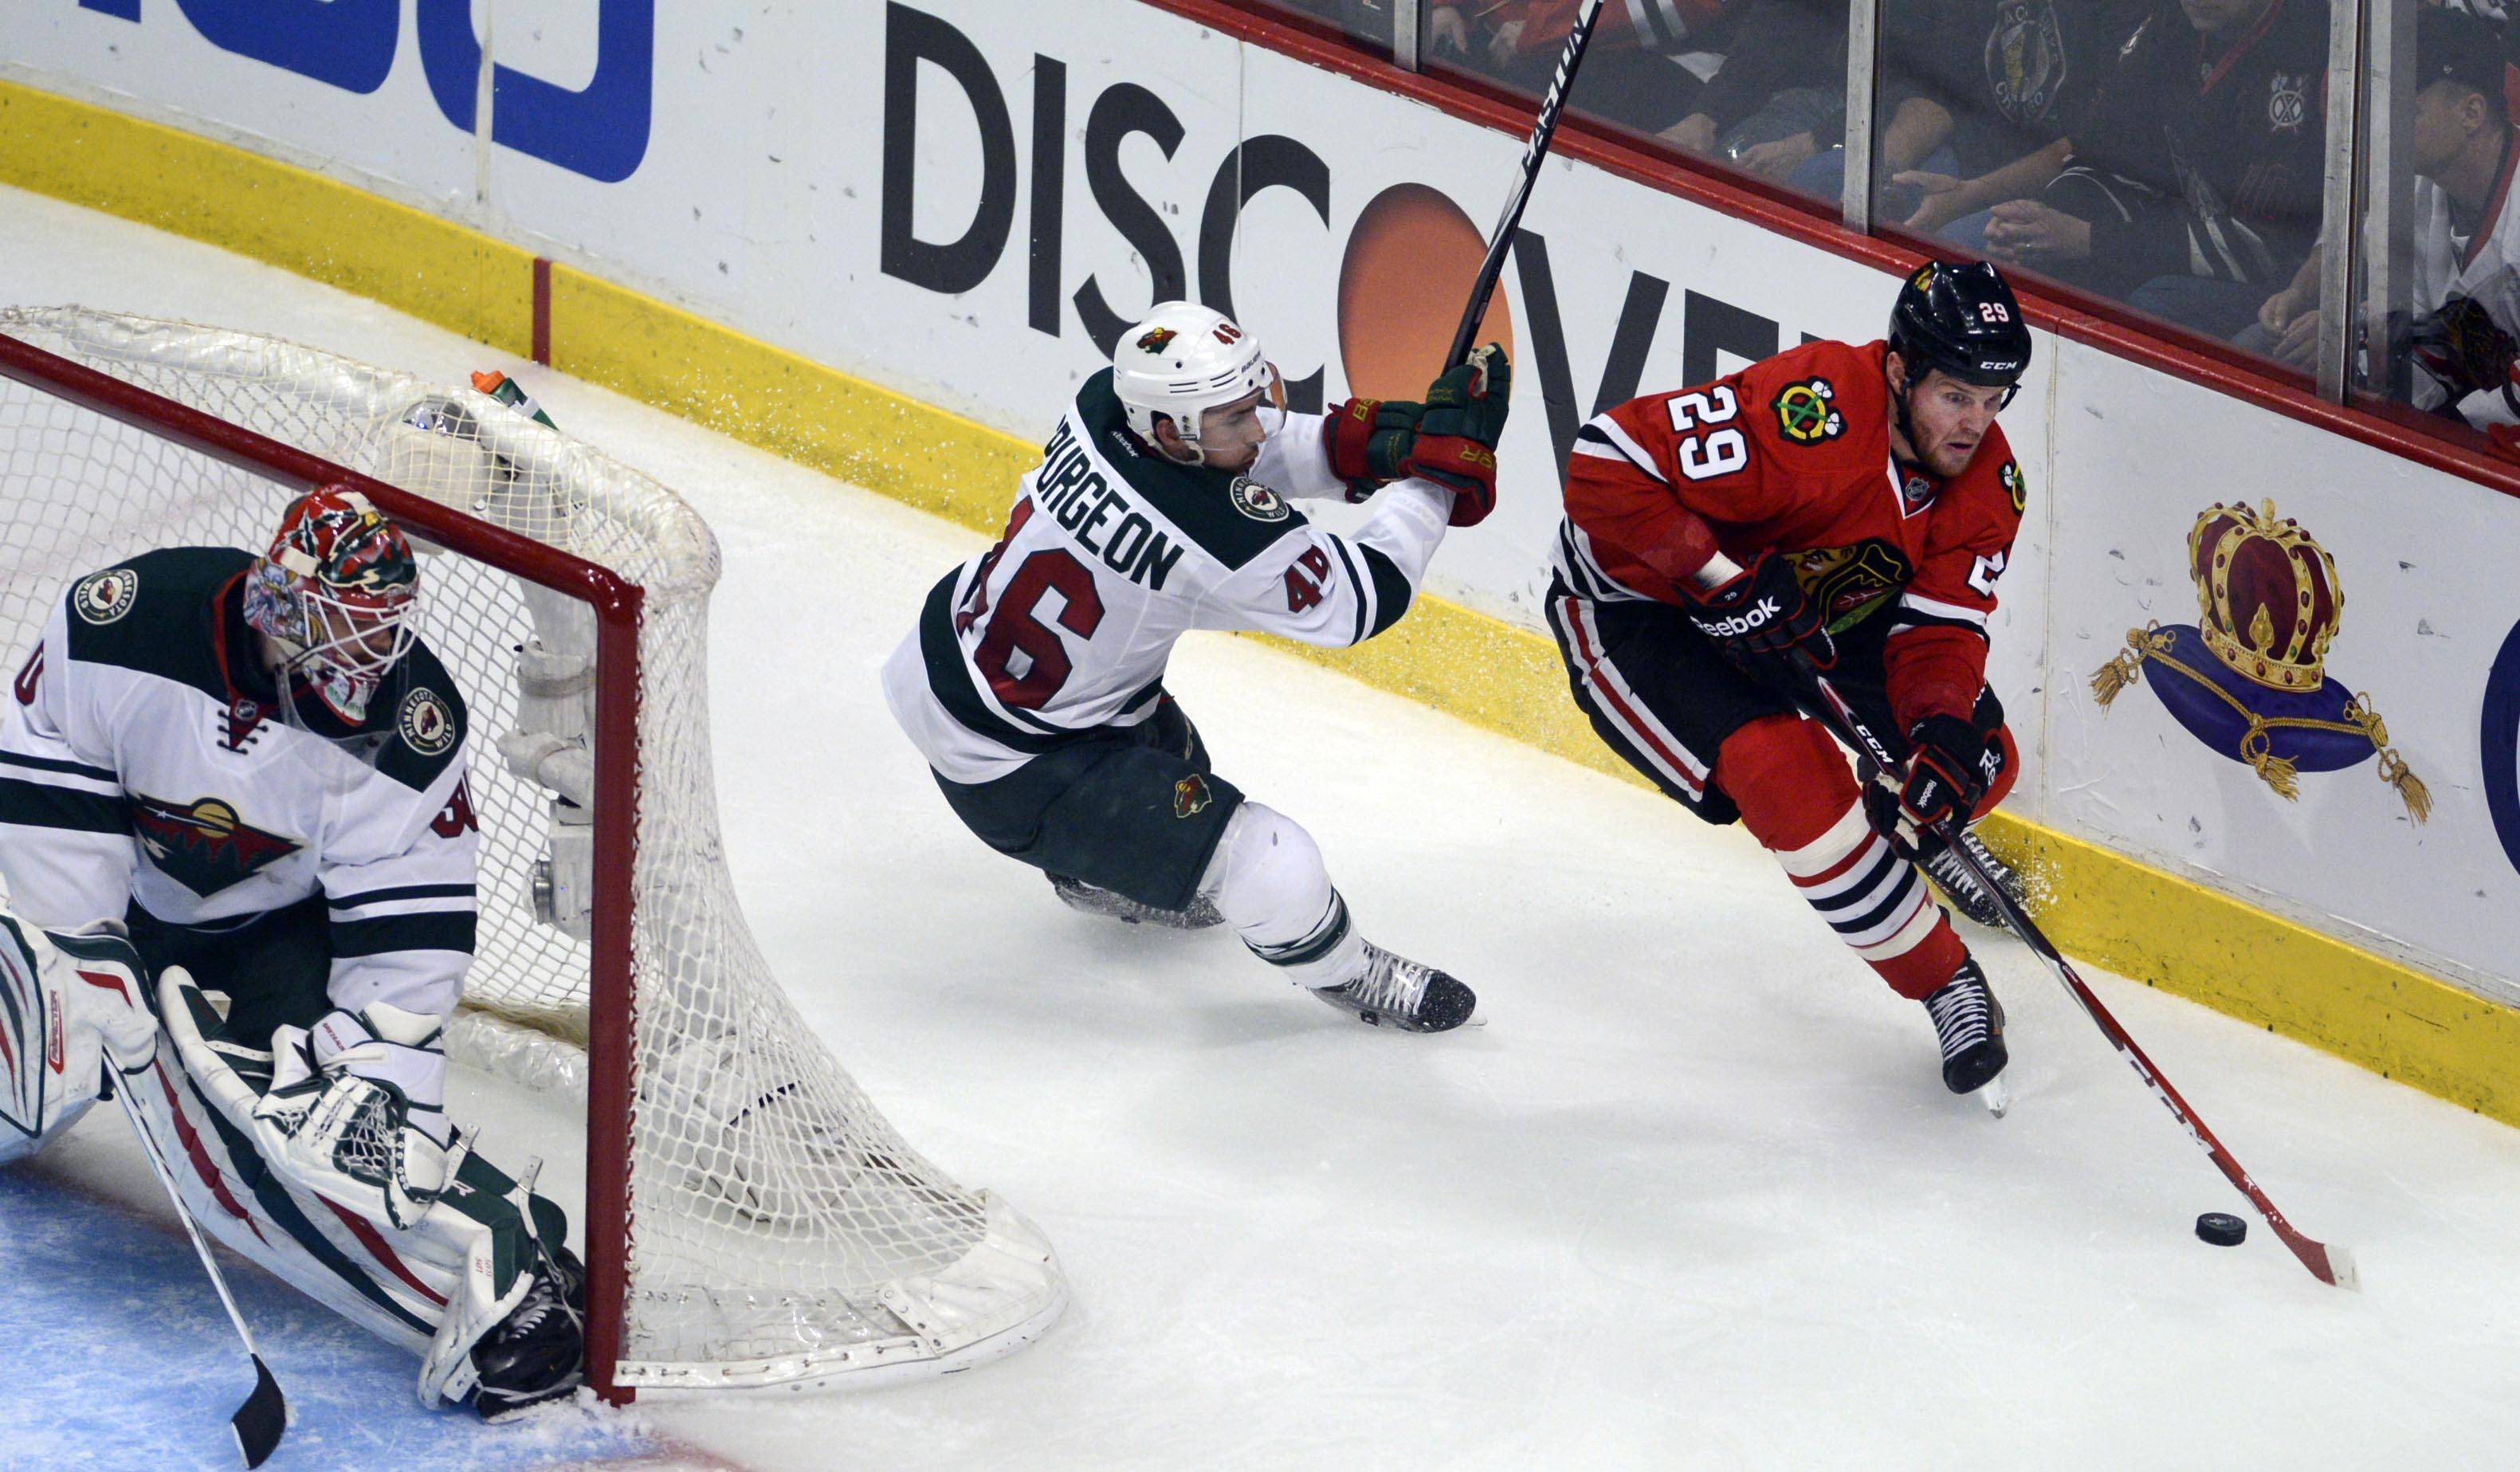 Chicago Blackhawks left wing Bryan Bickell is chased by Minnesota Wild defenseman Jared Spurgeon.